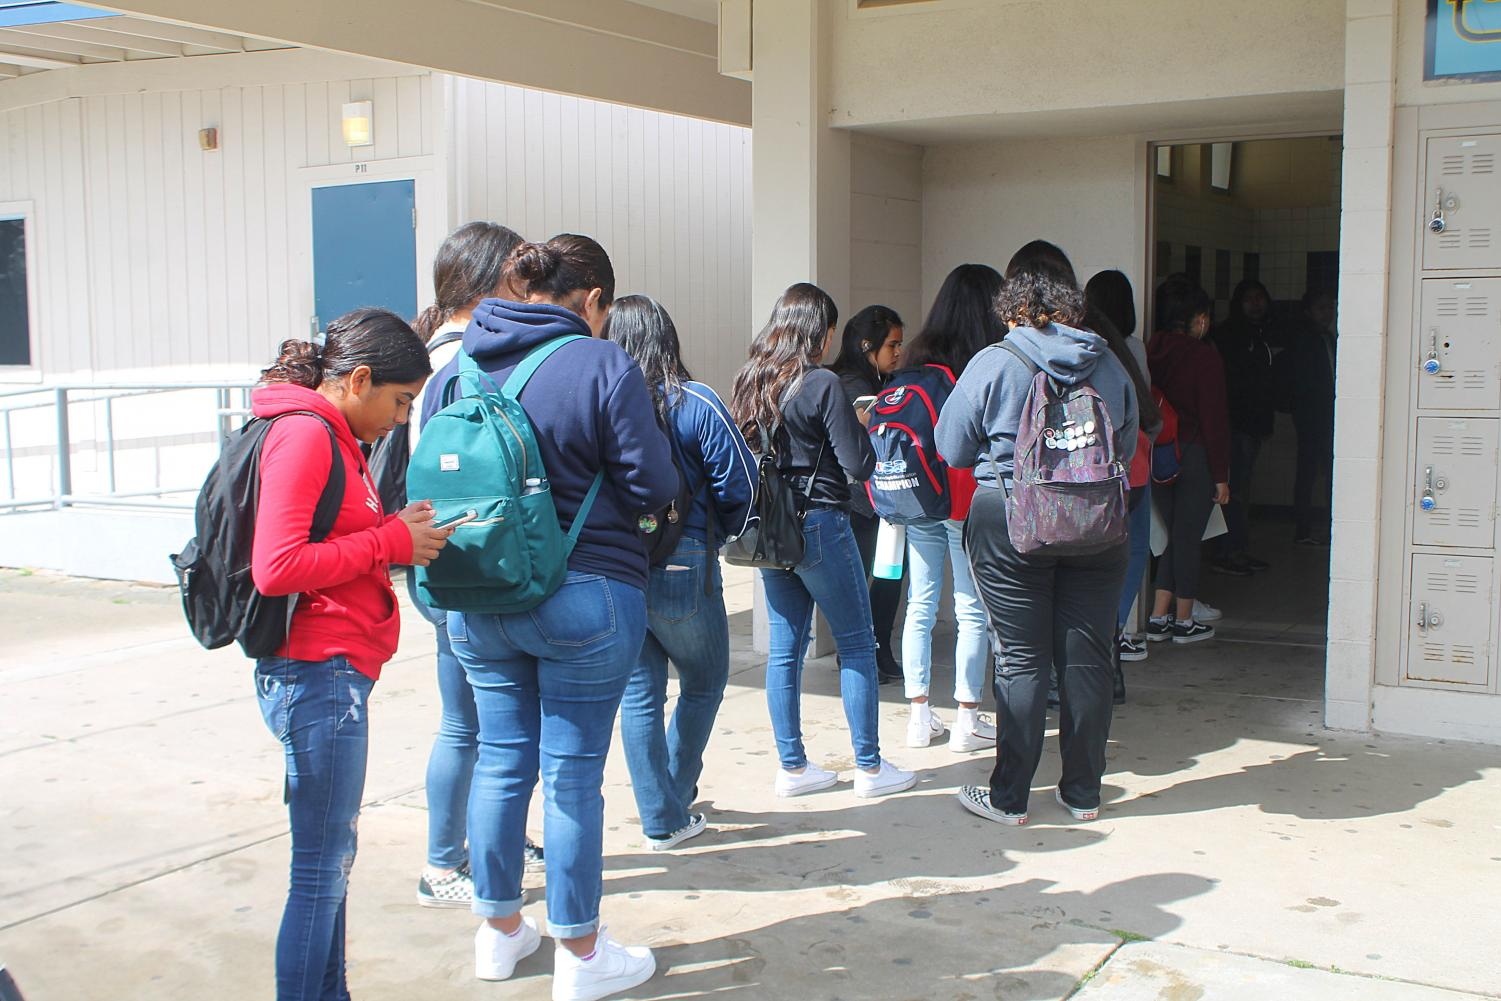 A line forms outside of the girls' restroom